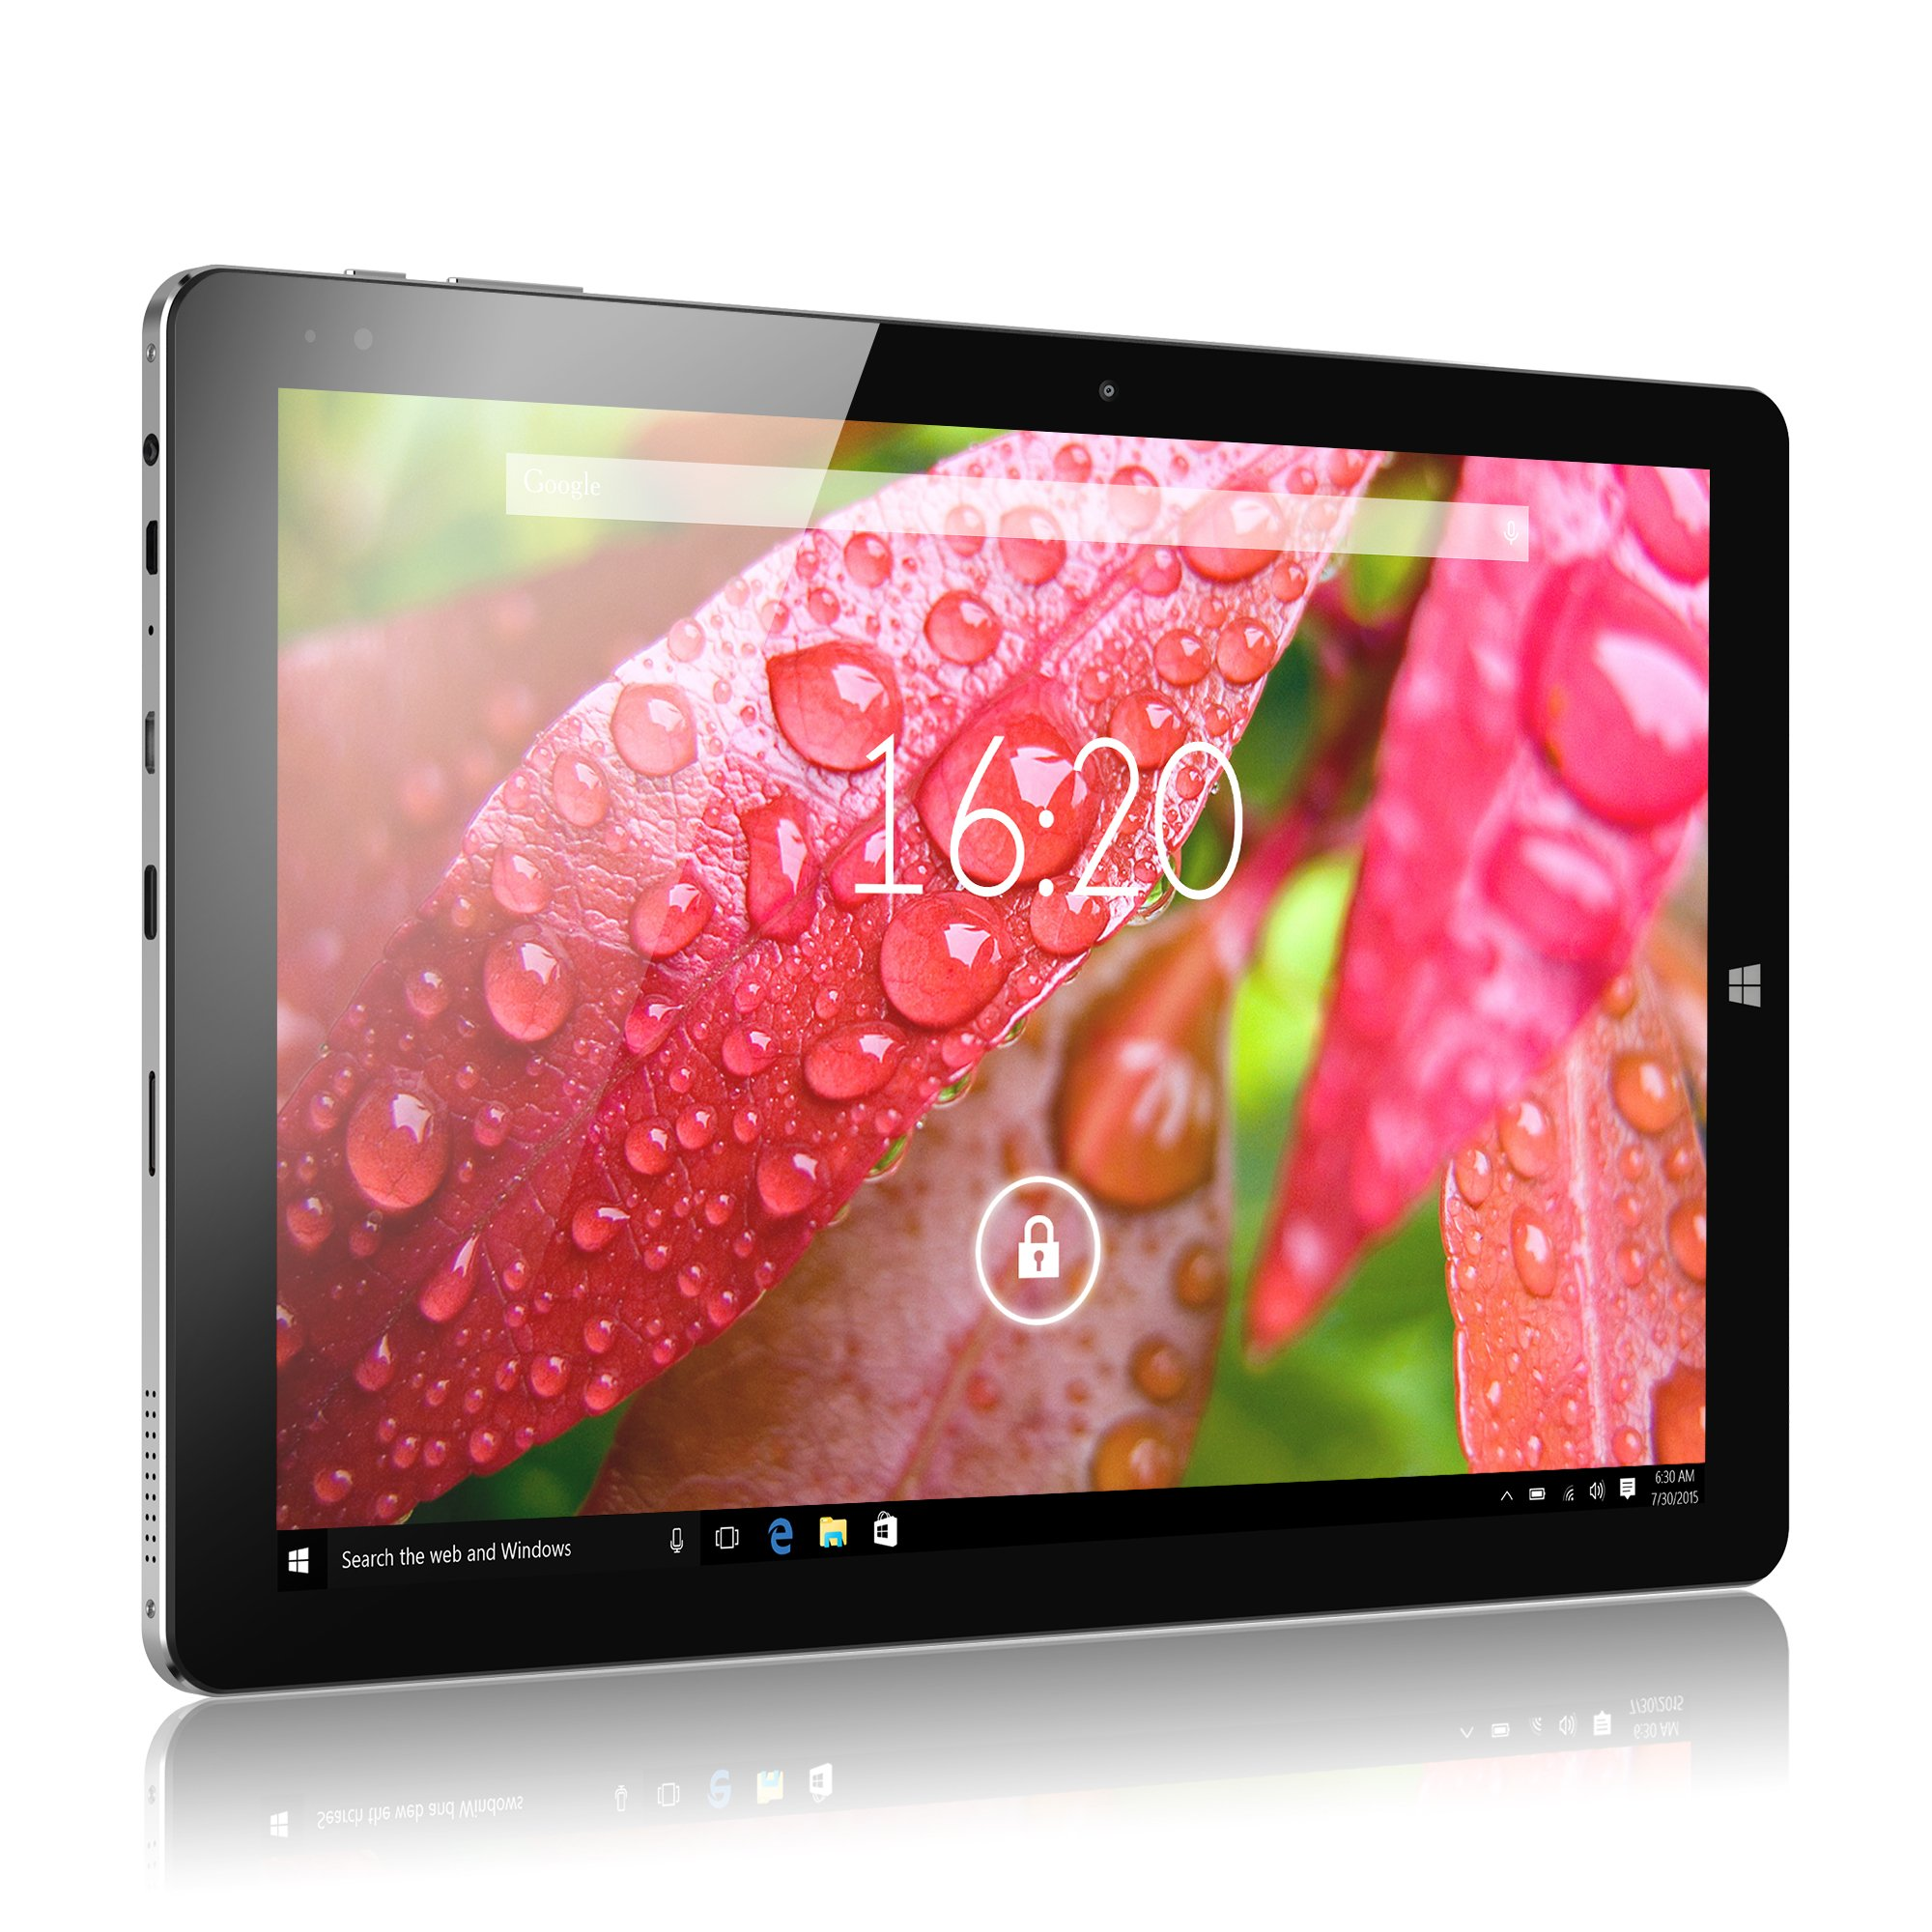 Windows Tablet, CHUWI Hi10 Plus Windows 10/Android 5.1 Dual Boot 2-in-1 Tablet PC, 10.8'' Full HD Display, featuring Intel X5 Cherry Trail Z8350 Quad Core, 4GB RAM/64GB ROM and Wifi by CHUWI